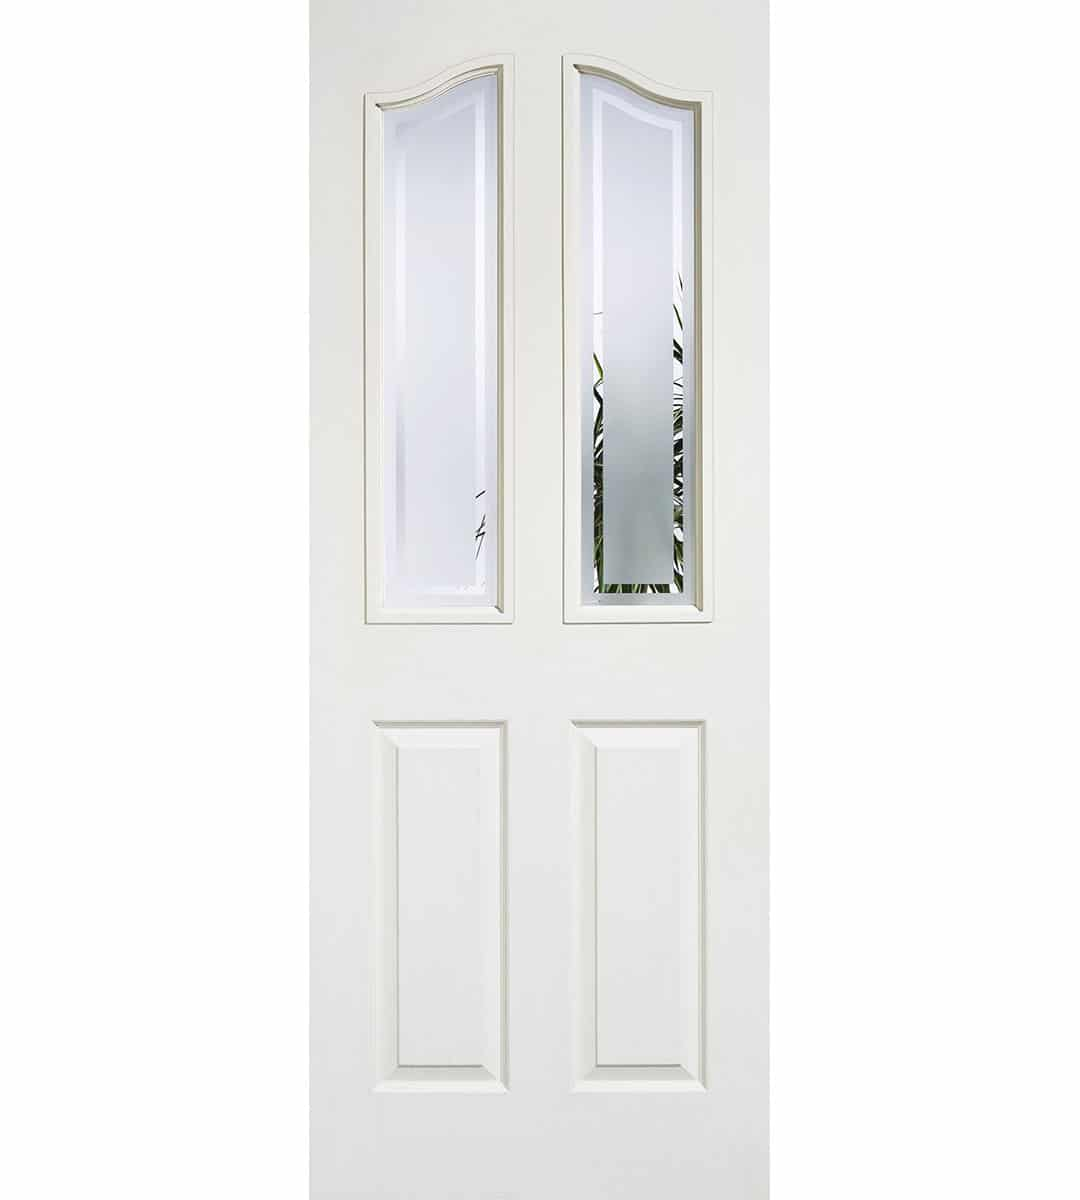 Mayfair white panel door with glass shawfield doors mayfair white panel door with glass 1981mm x 686mm x 35mm planetlyrics Gallery